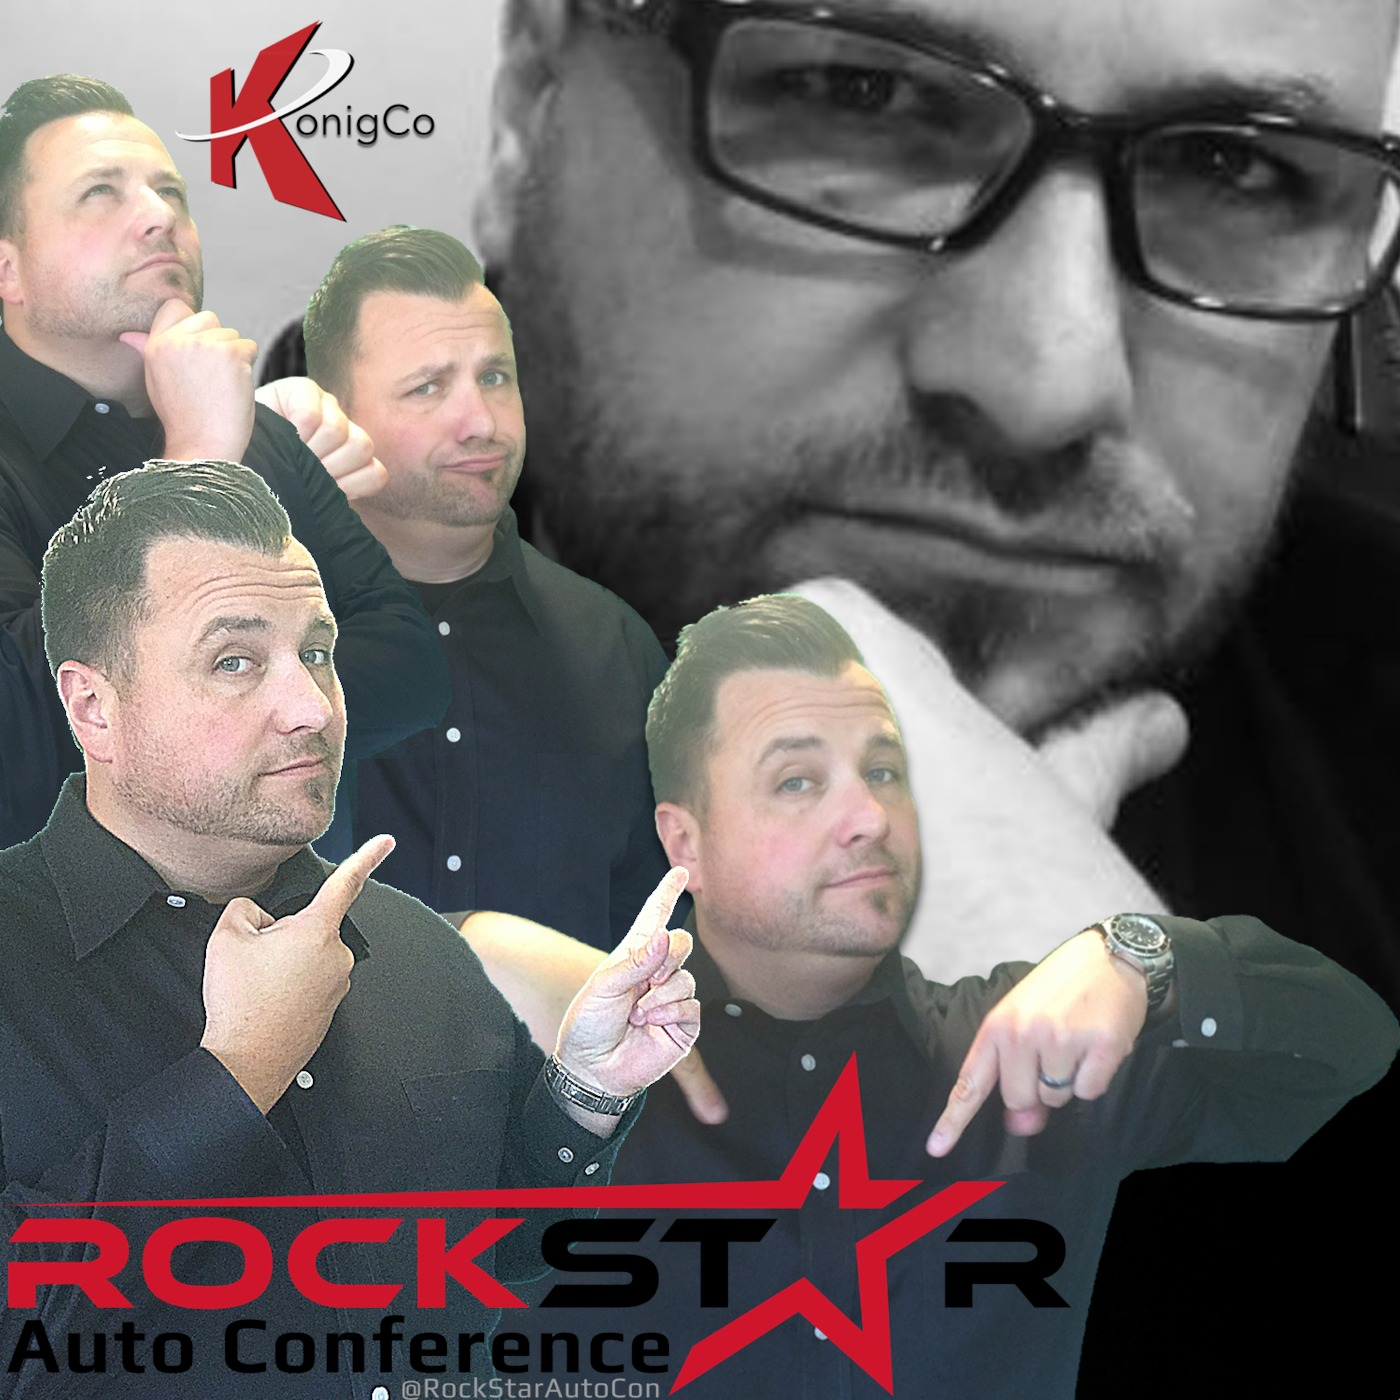 Rockstar Sales and Motivation Podcast